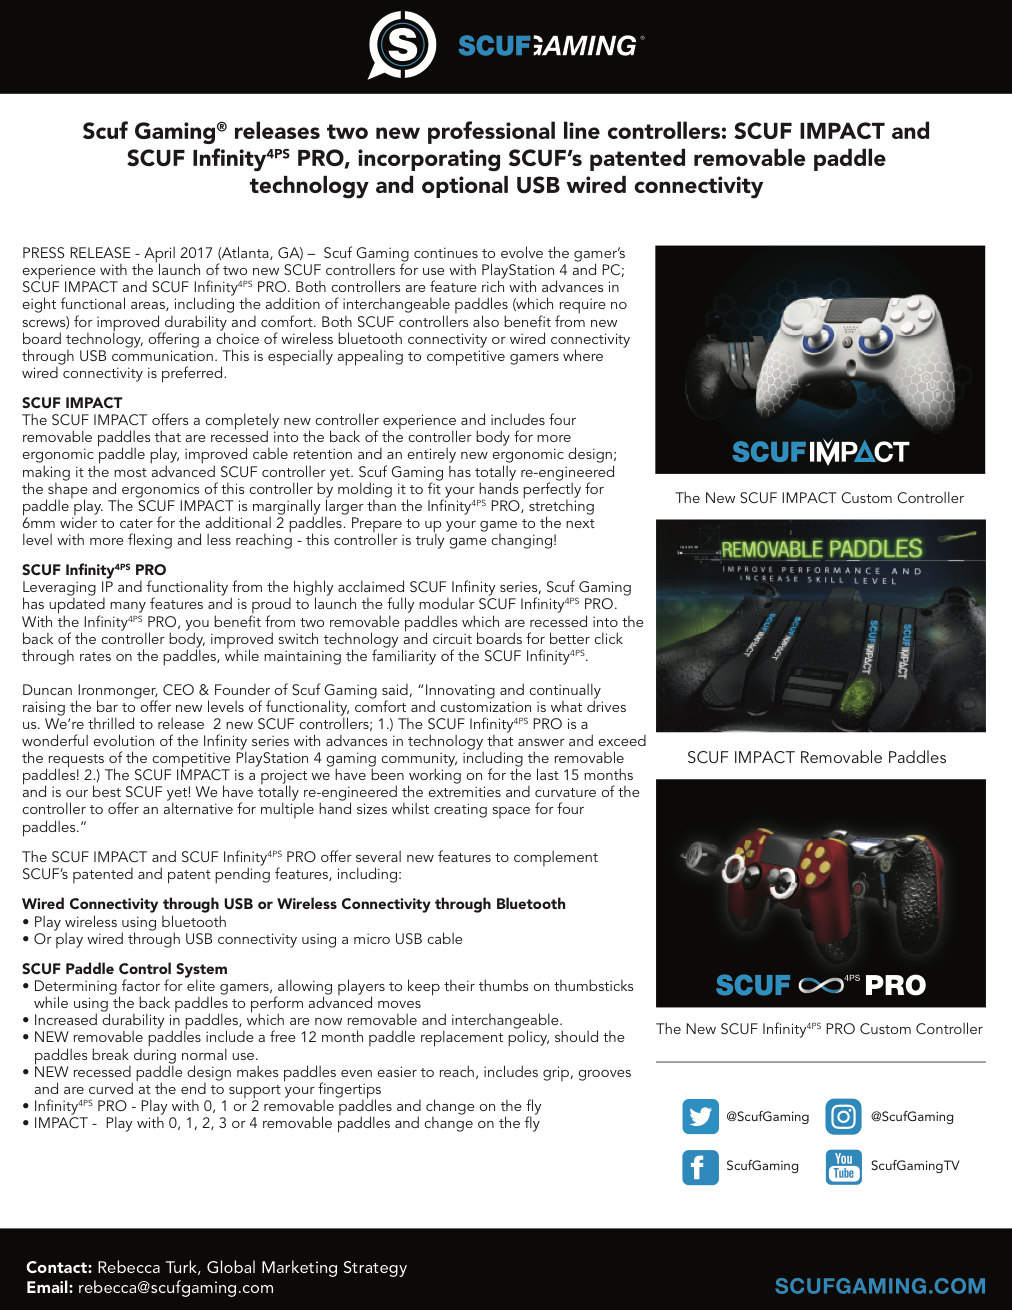 SCUF Infinity 4PS Pro Press Release